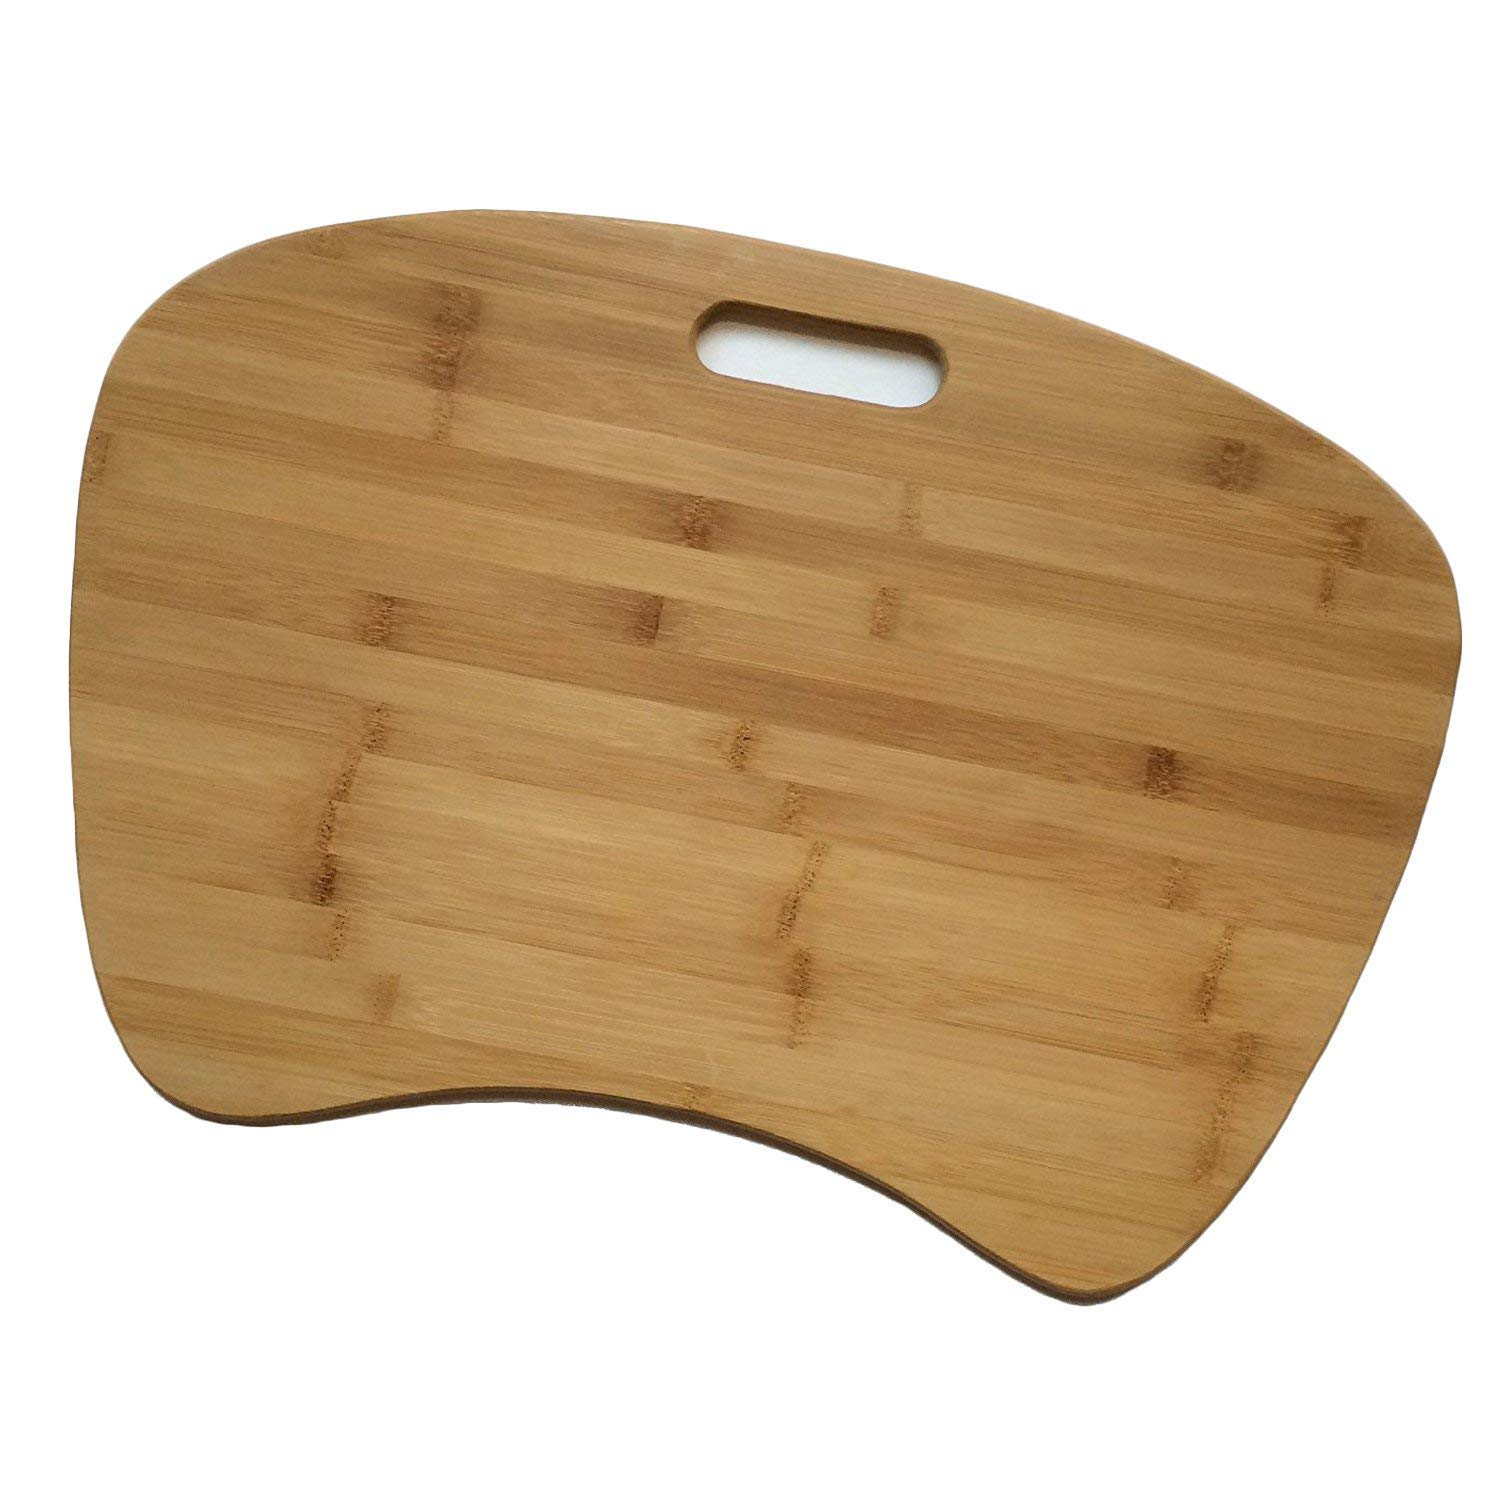 IMPROVED Triple-Layer Bamboo Lap Desk for Laptop | Unbreakable Construction | Jumbo Size with Detachable Cushion | Eco Friendly